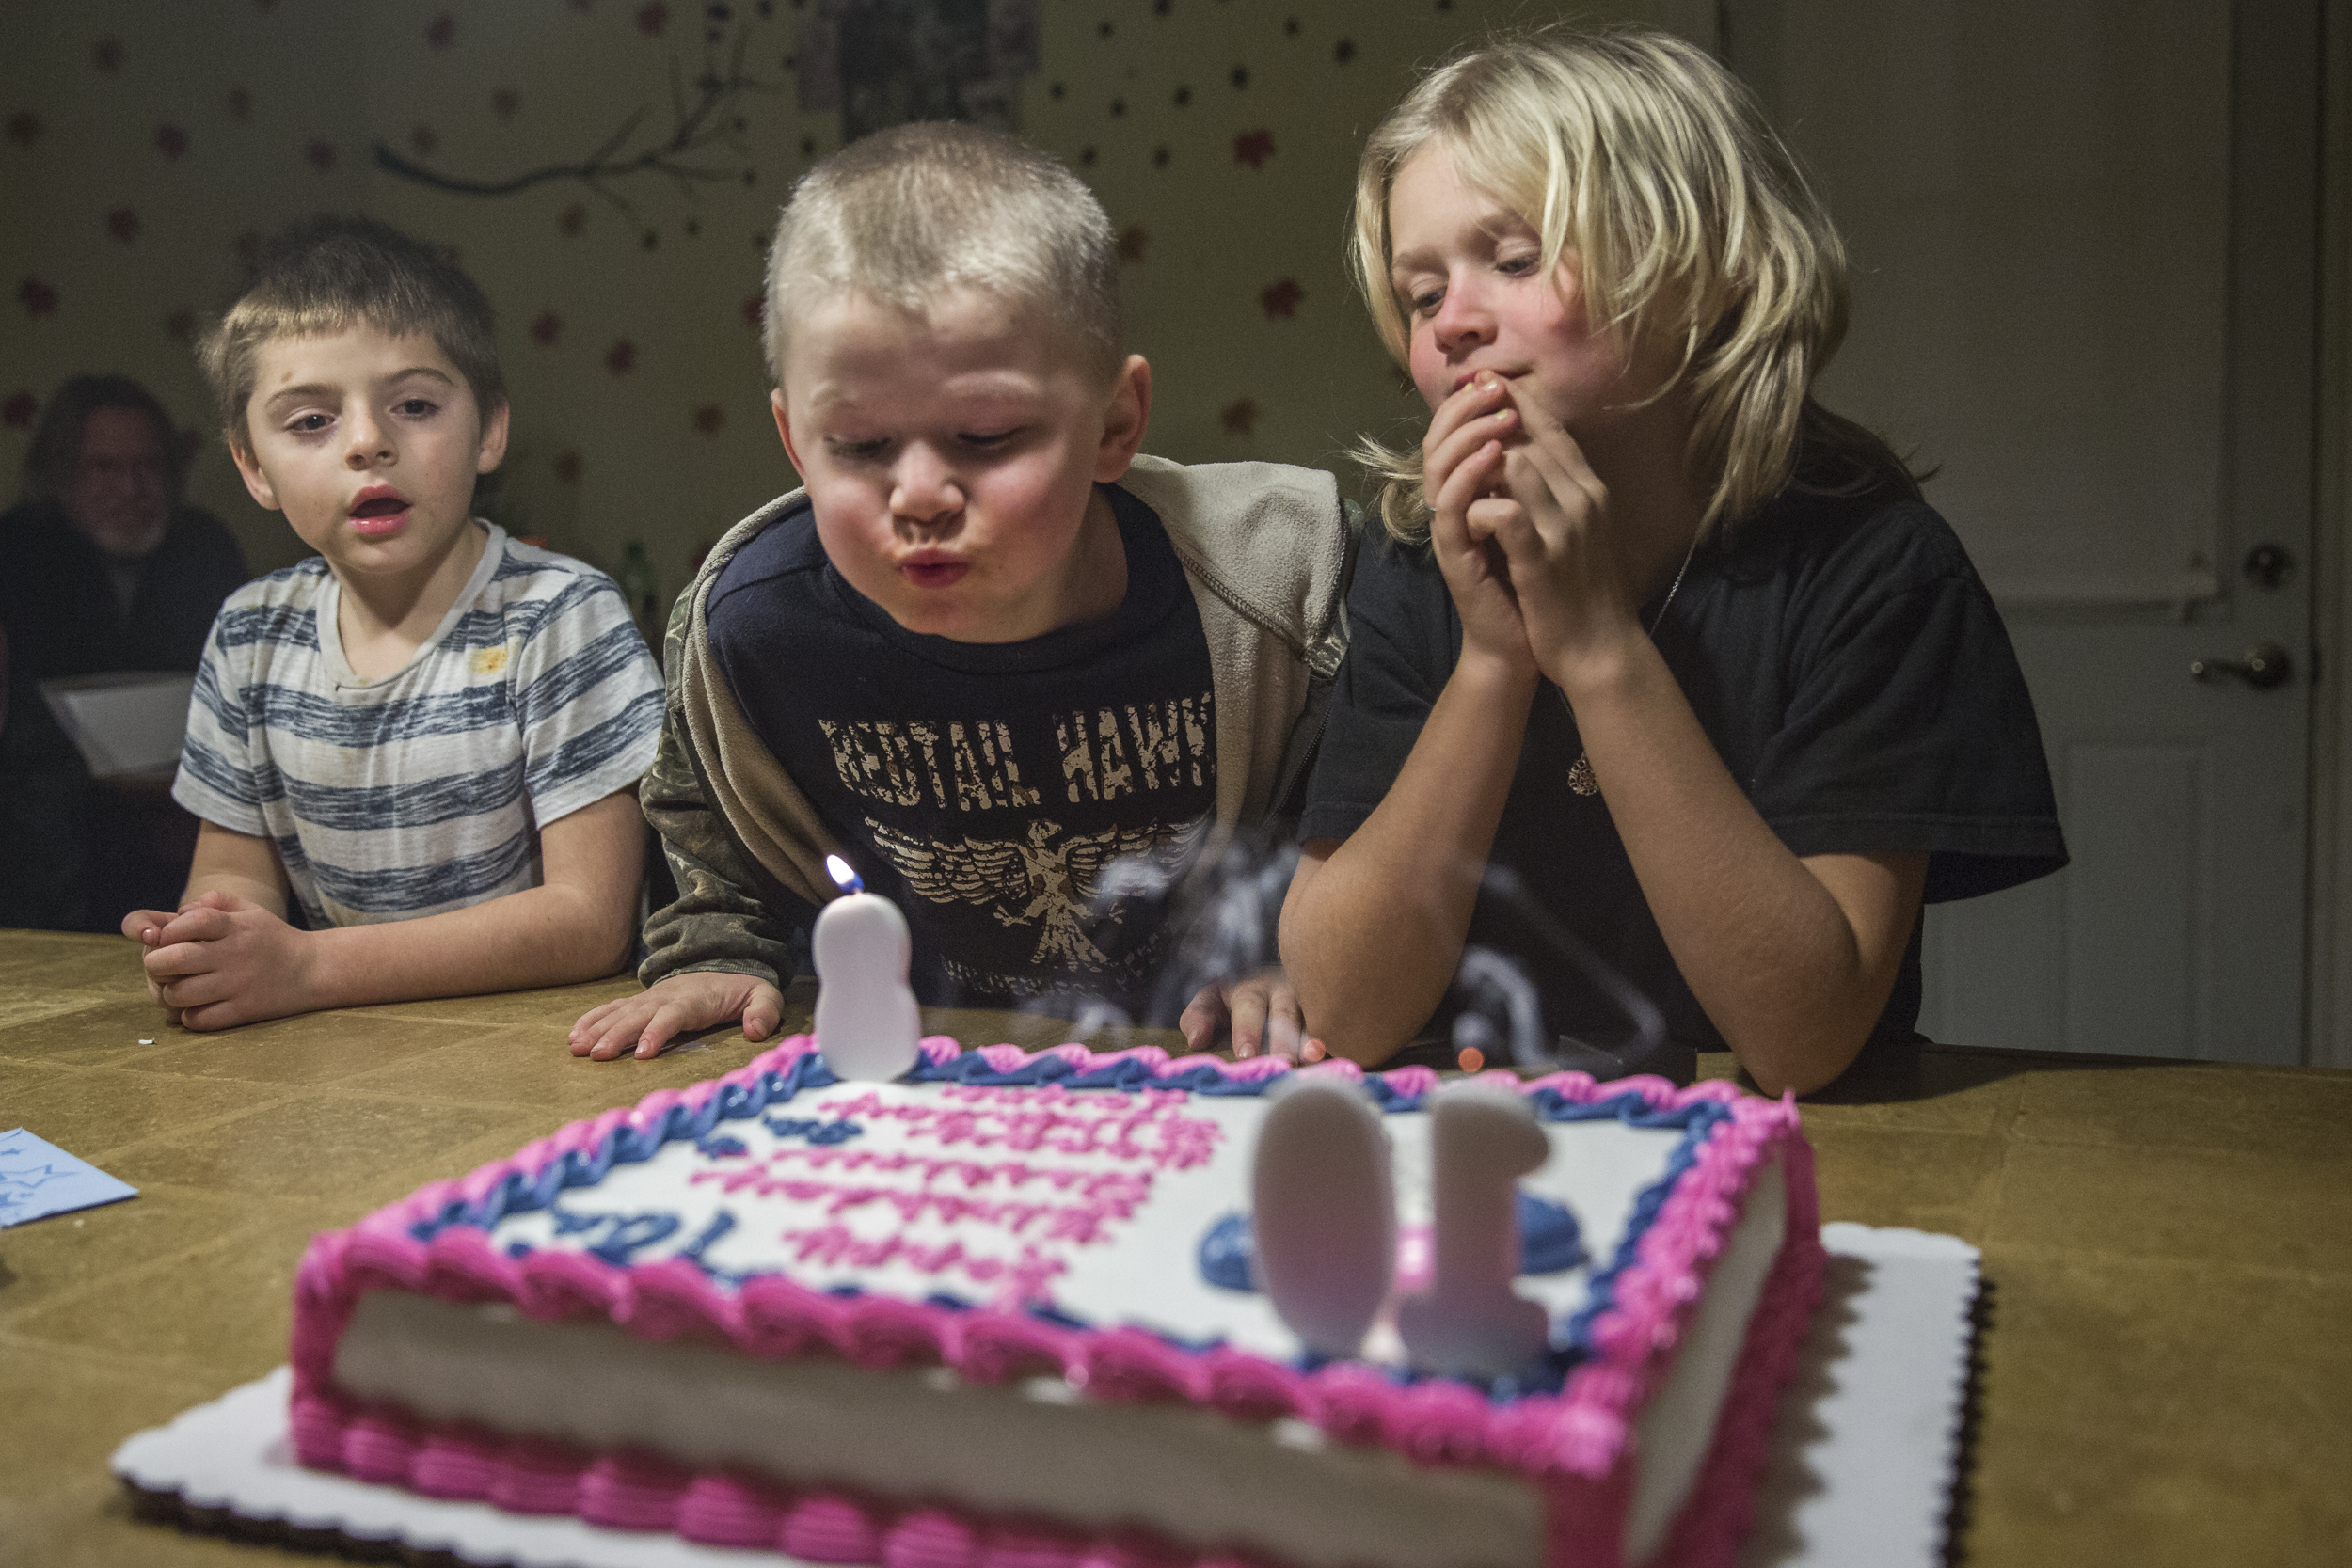 "(Left) Ronnie Bauer, 6, and Destinee (right) watch as Layne blows out his birthday candle at their combined birthday party. Destinee and Layne ""fight like cats and dogs at home"", says Bridgette, ""but when we're not around, she watches him like a hawk."" Nov. 24, 2014."